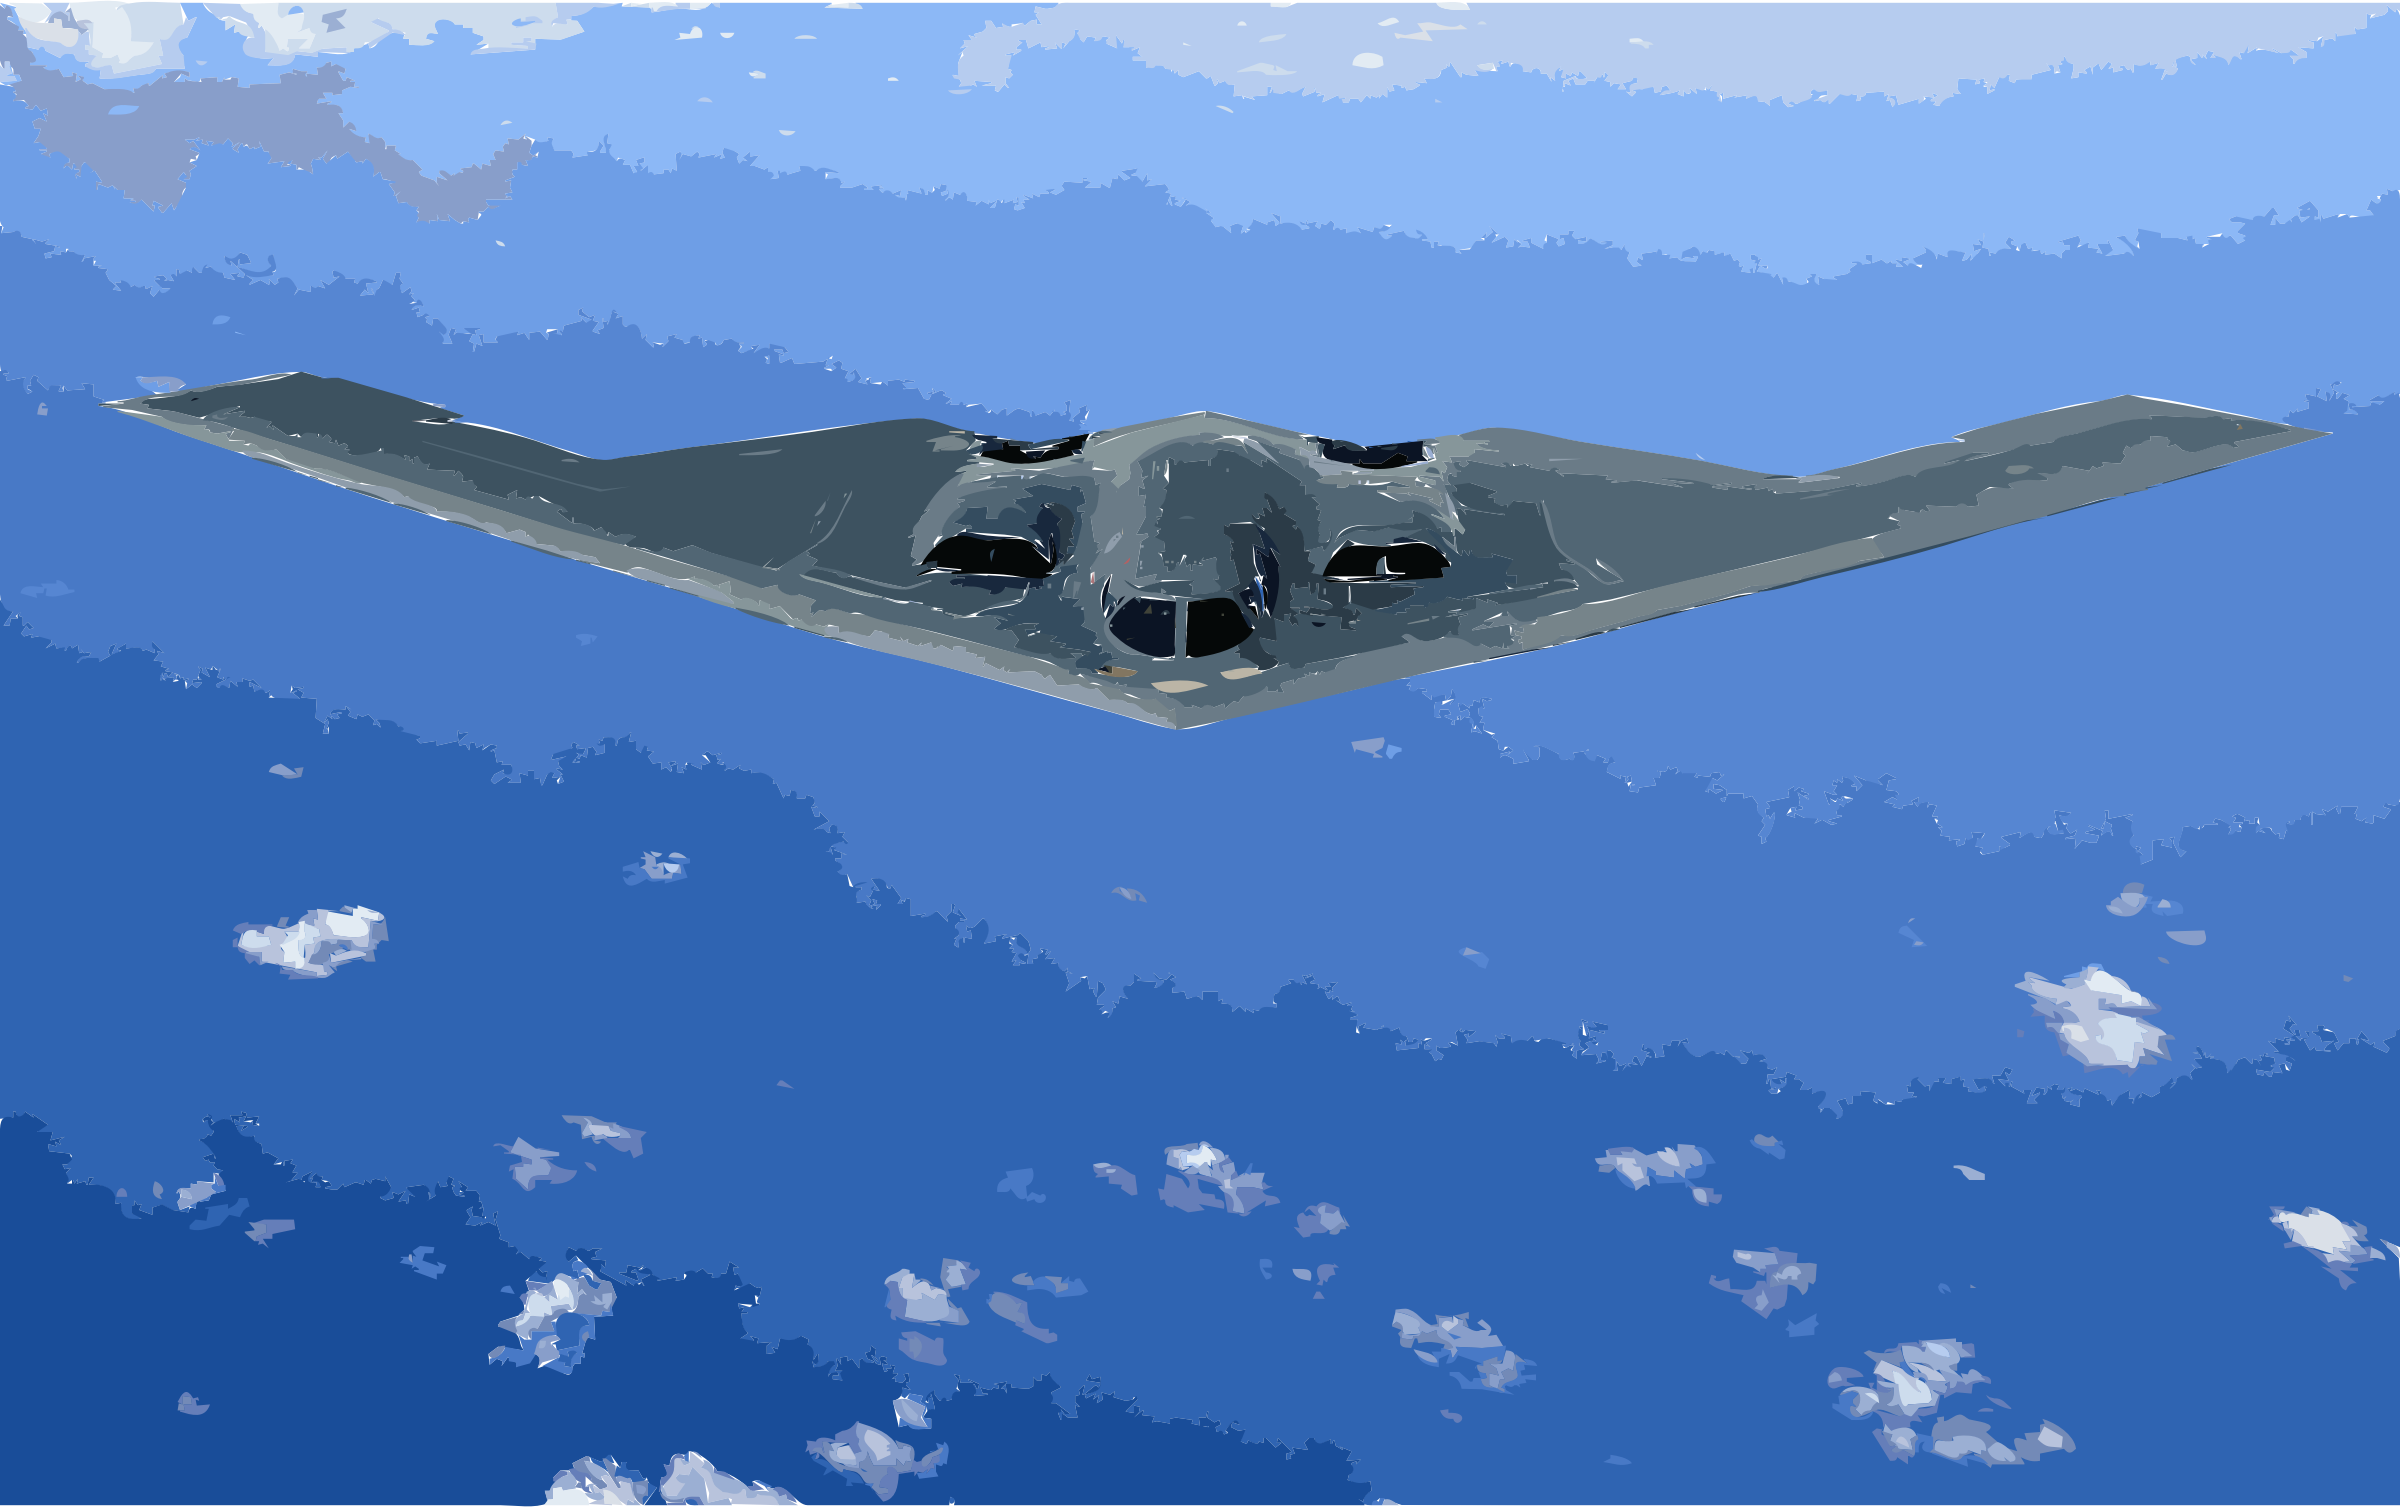 B-2 Spirit original by 3w8x8j+ekad9if2mkux4